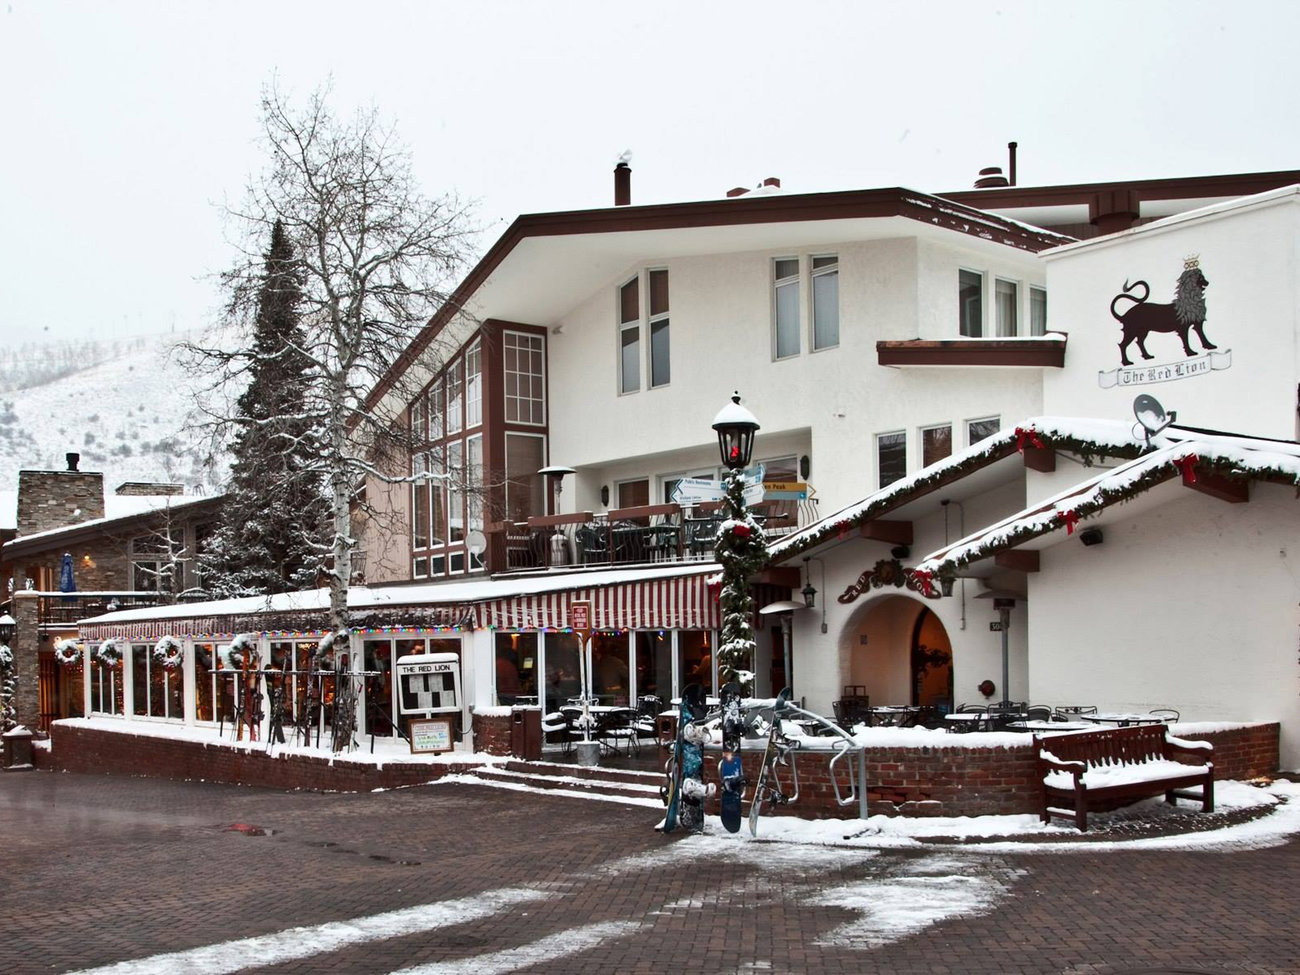 The Red Lion Bar in Vail